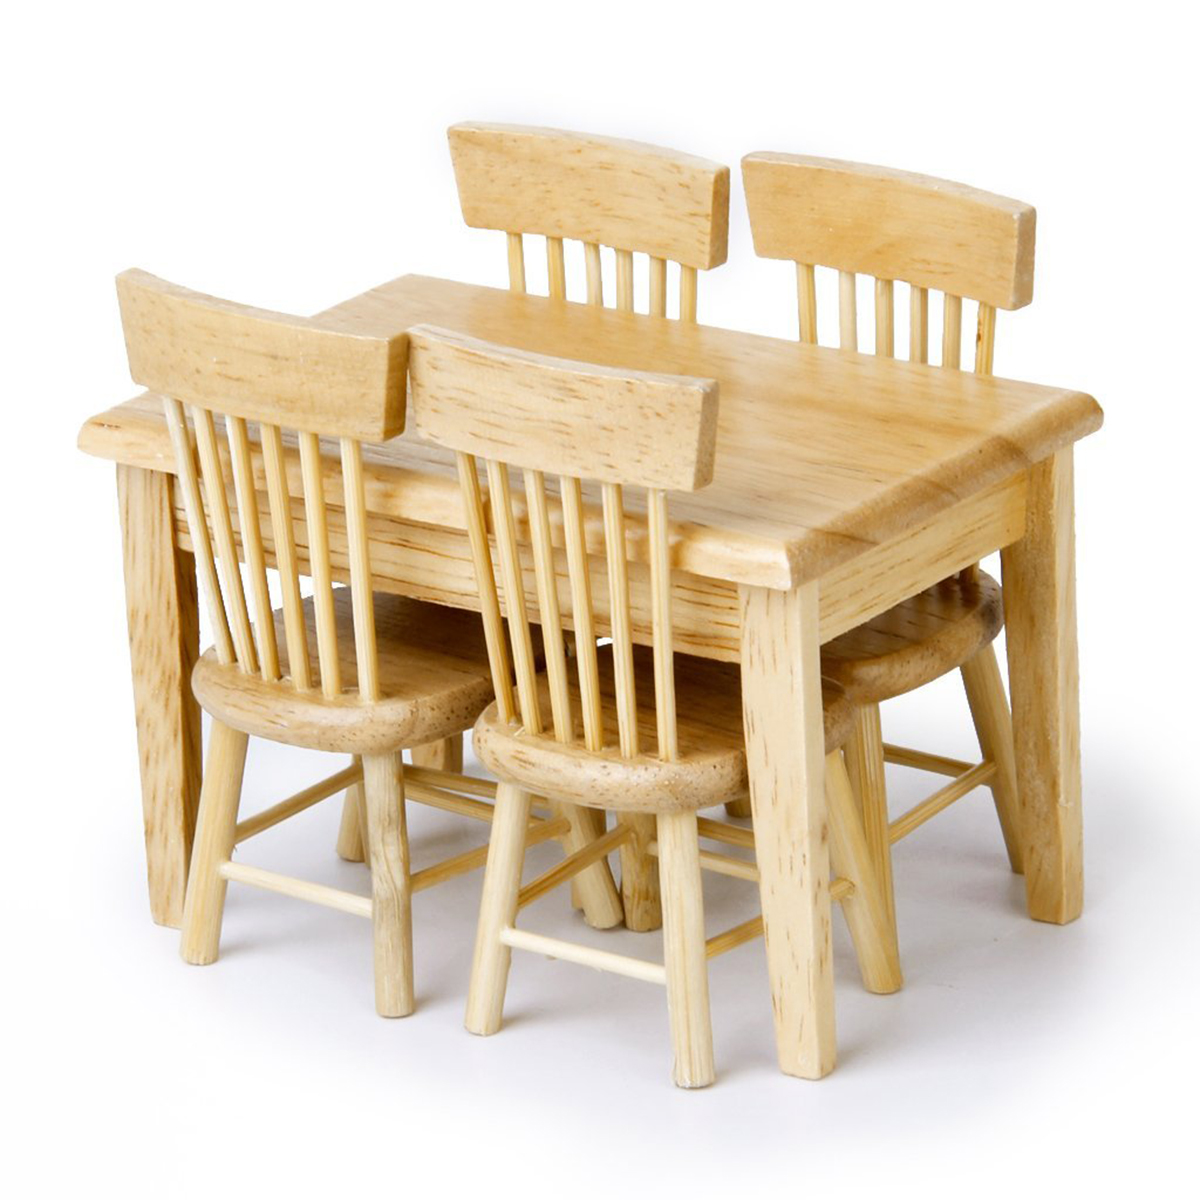 Wooden chairs for dining table - 5pcs Set 1 12 Dollhouse Miniature Dining Table Chair Wooden Furniture Set Wood